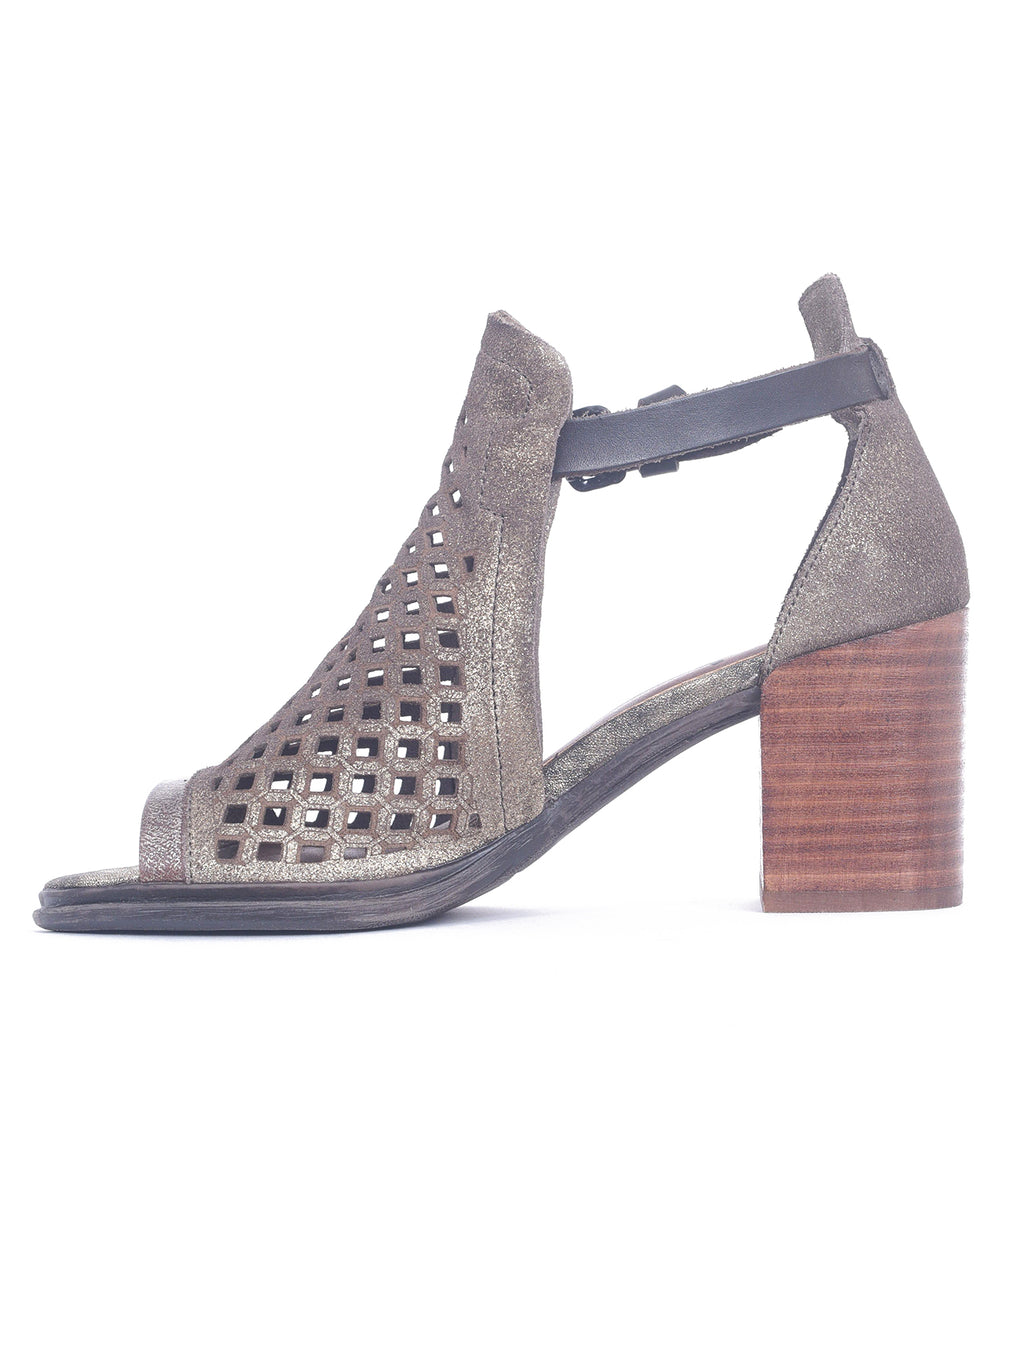 OTBT Shoes Metaphor Heels, Bronze